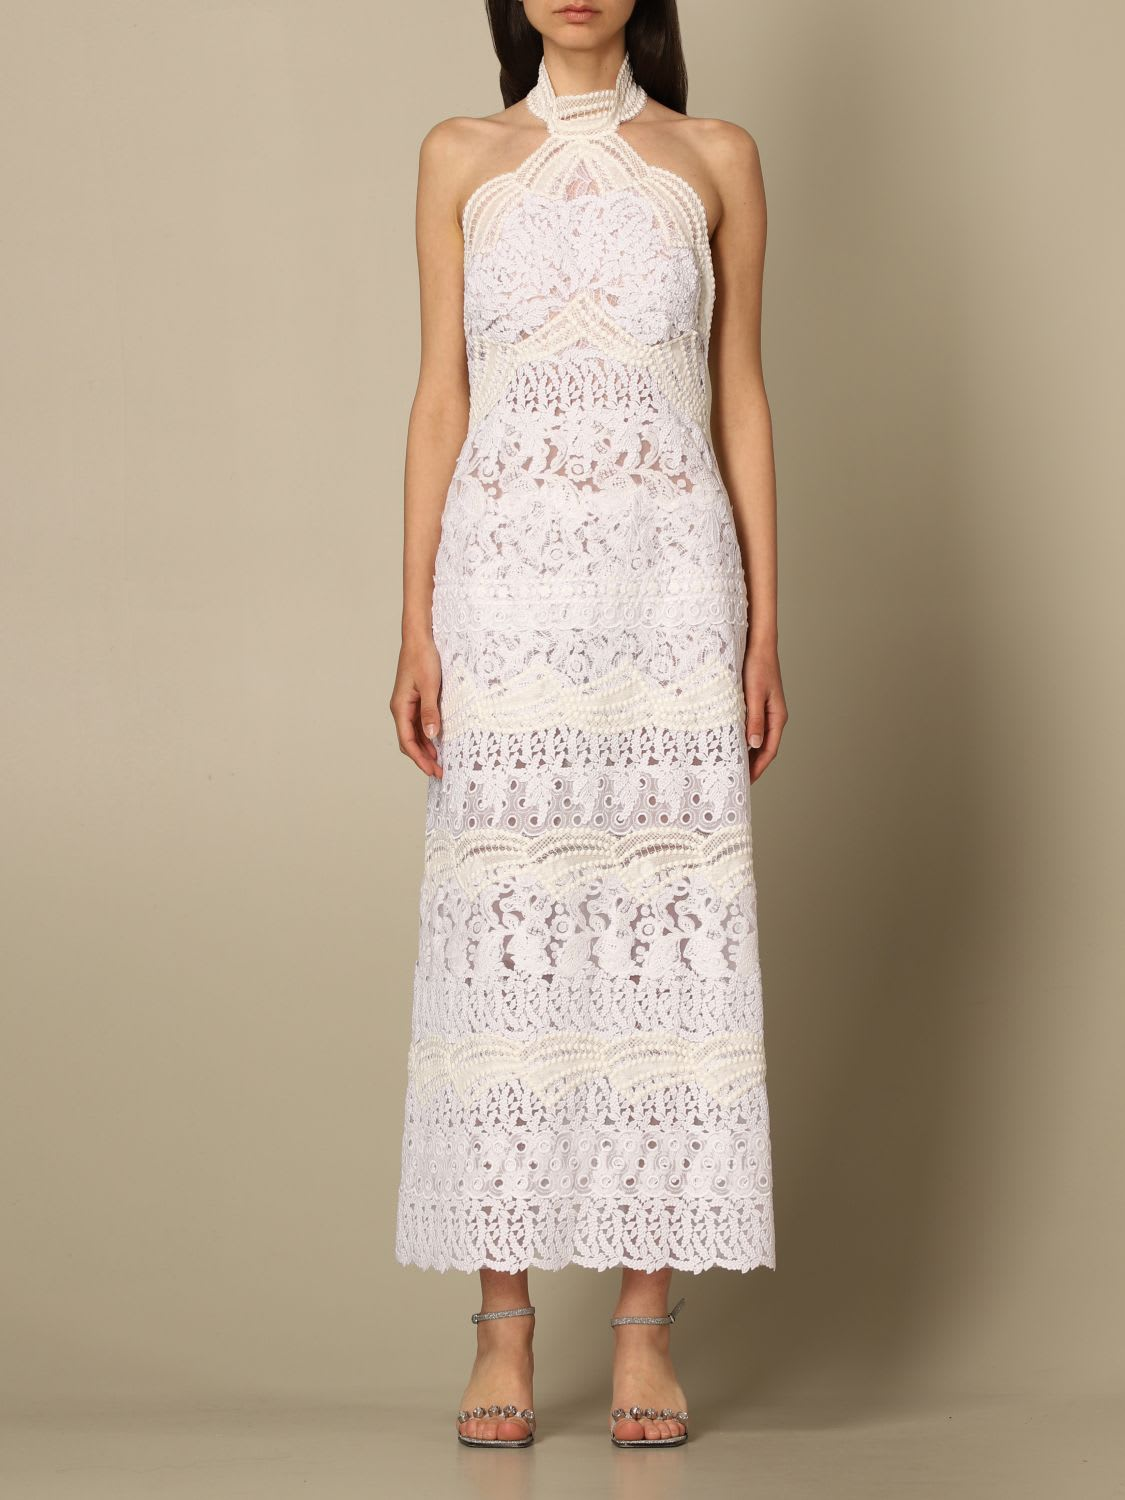 Ermanno Scervino Dress Ermanno Scervino Long Dress With Embroidery And Lace